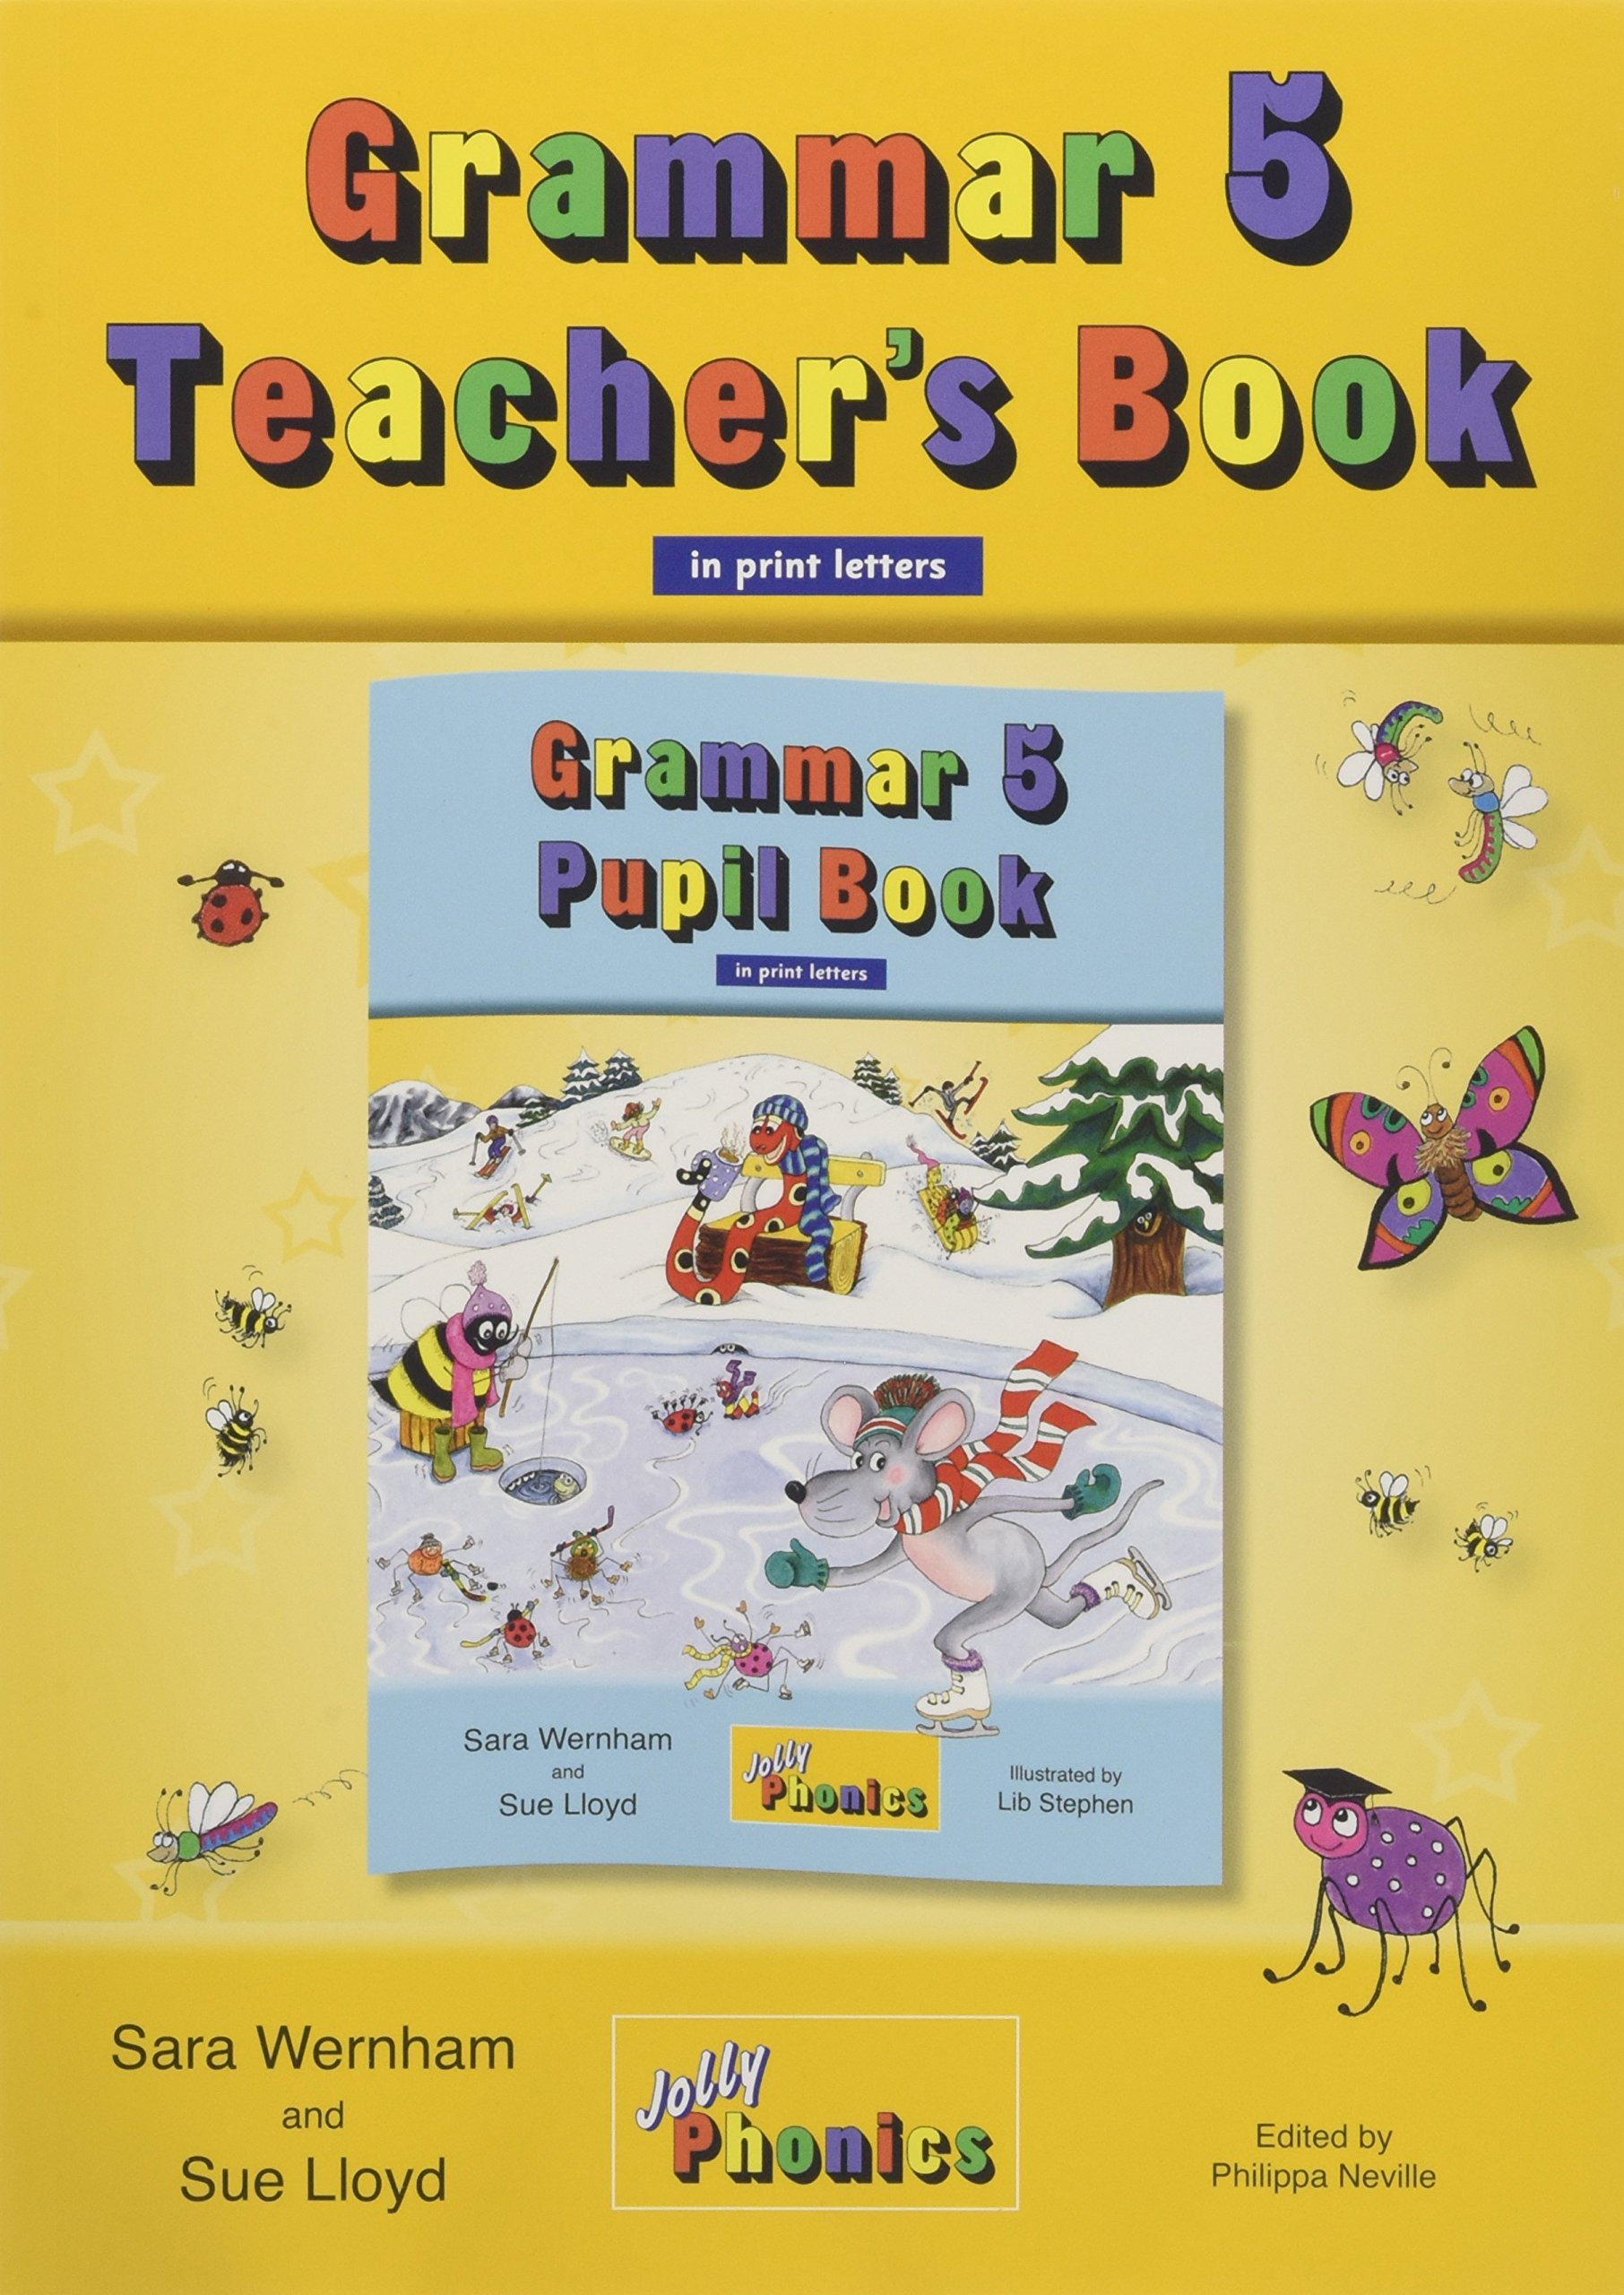 JOLLY GRAMMAR 5 Teachers Book (BE) print letters